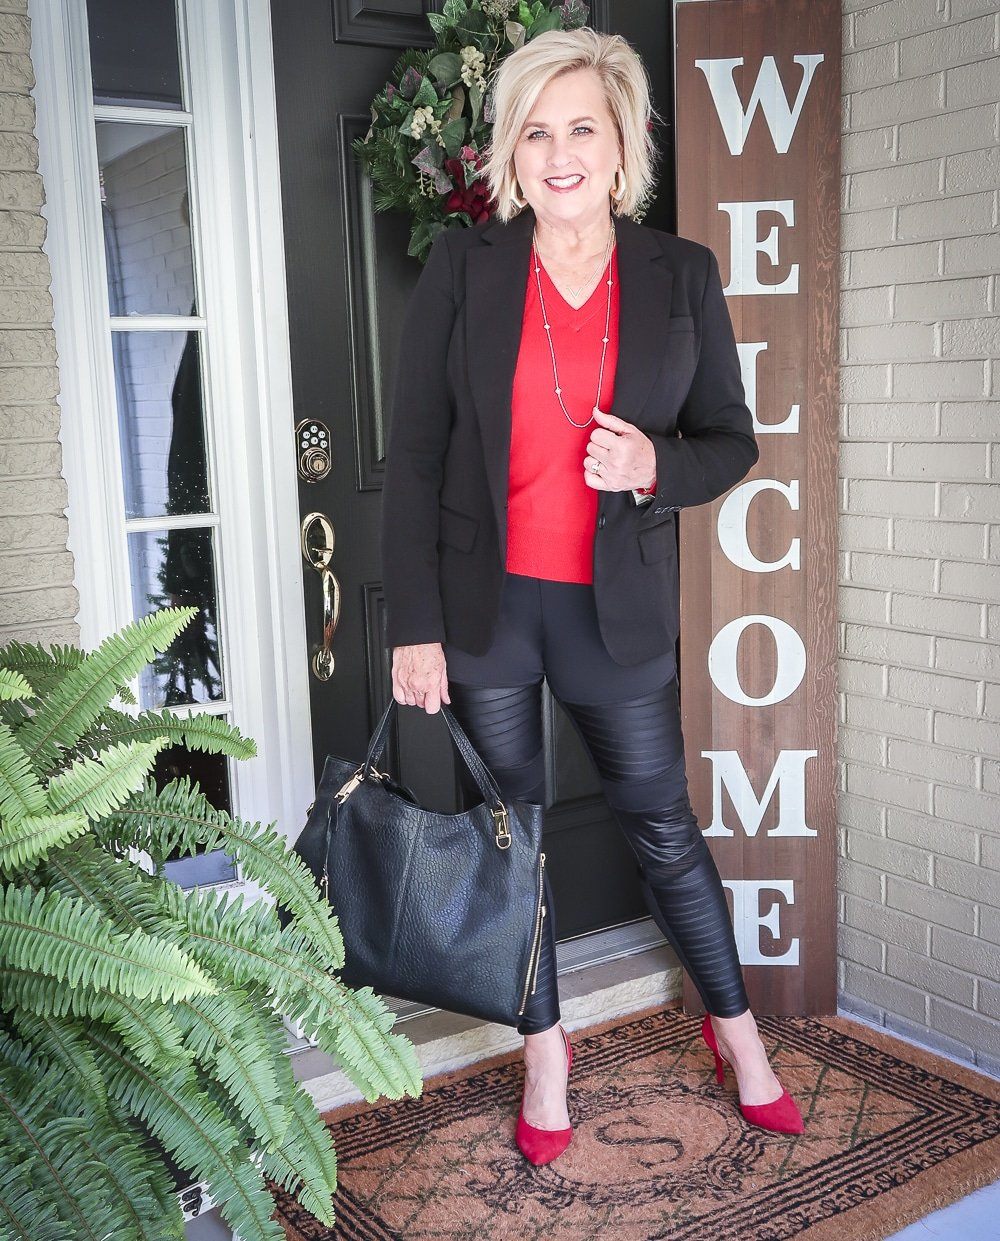 Fashion Blogger 50 Is Not Old is looking modern and edgy in this pair of black faux leather moto leggings and a red sweater and red pumps